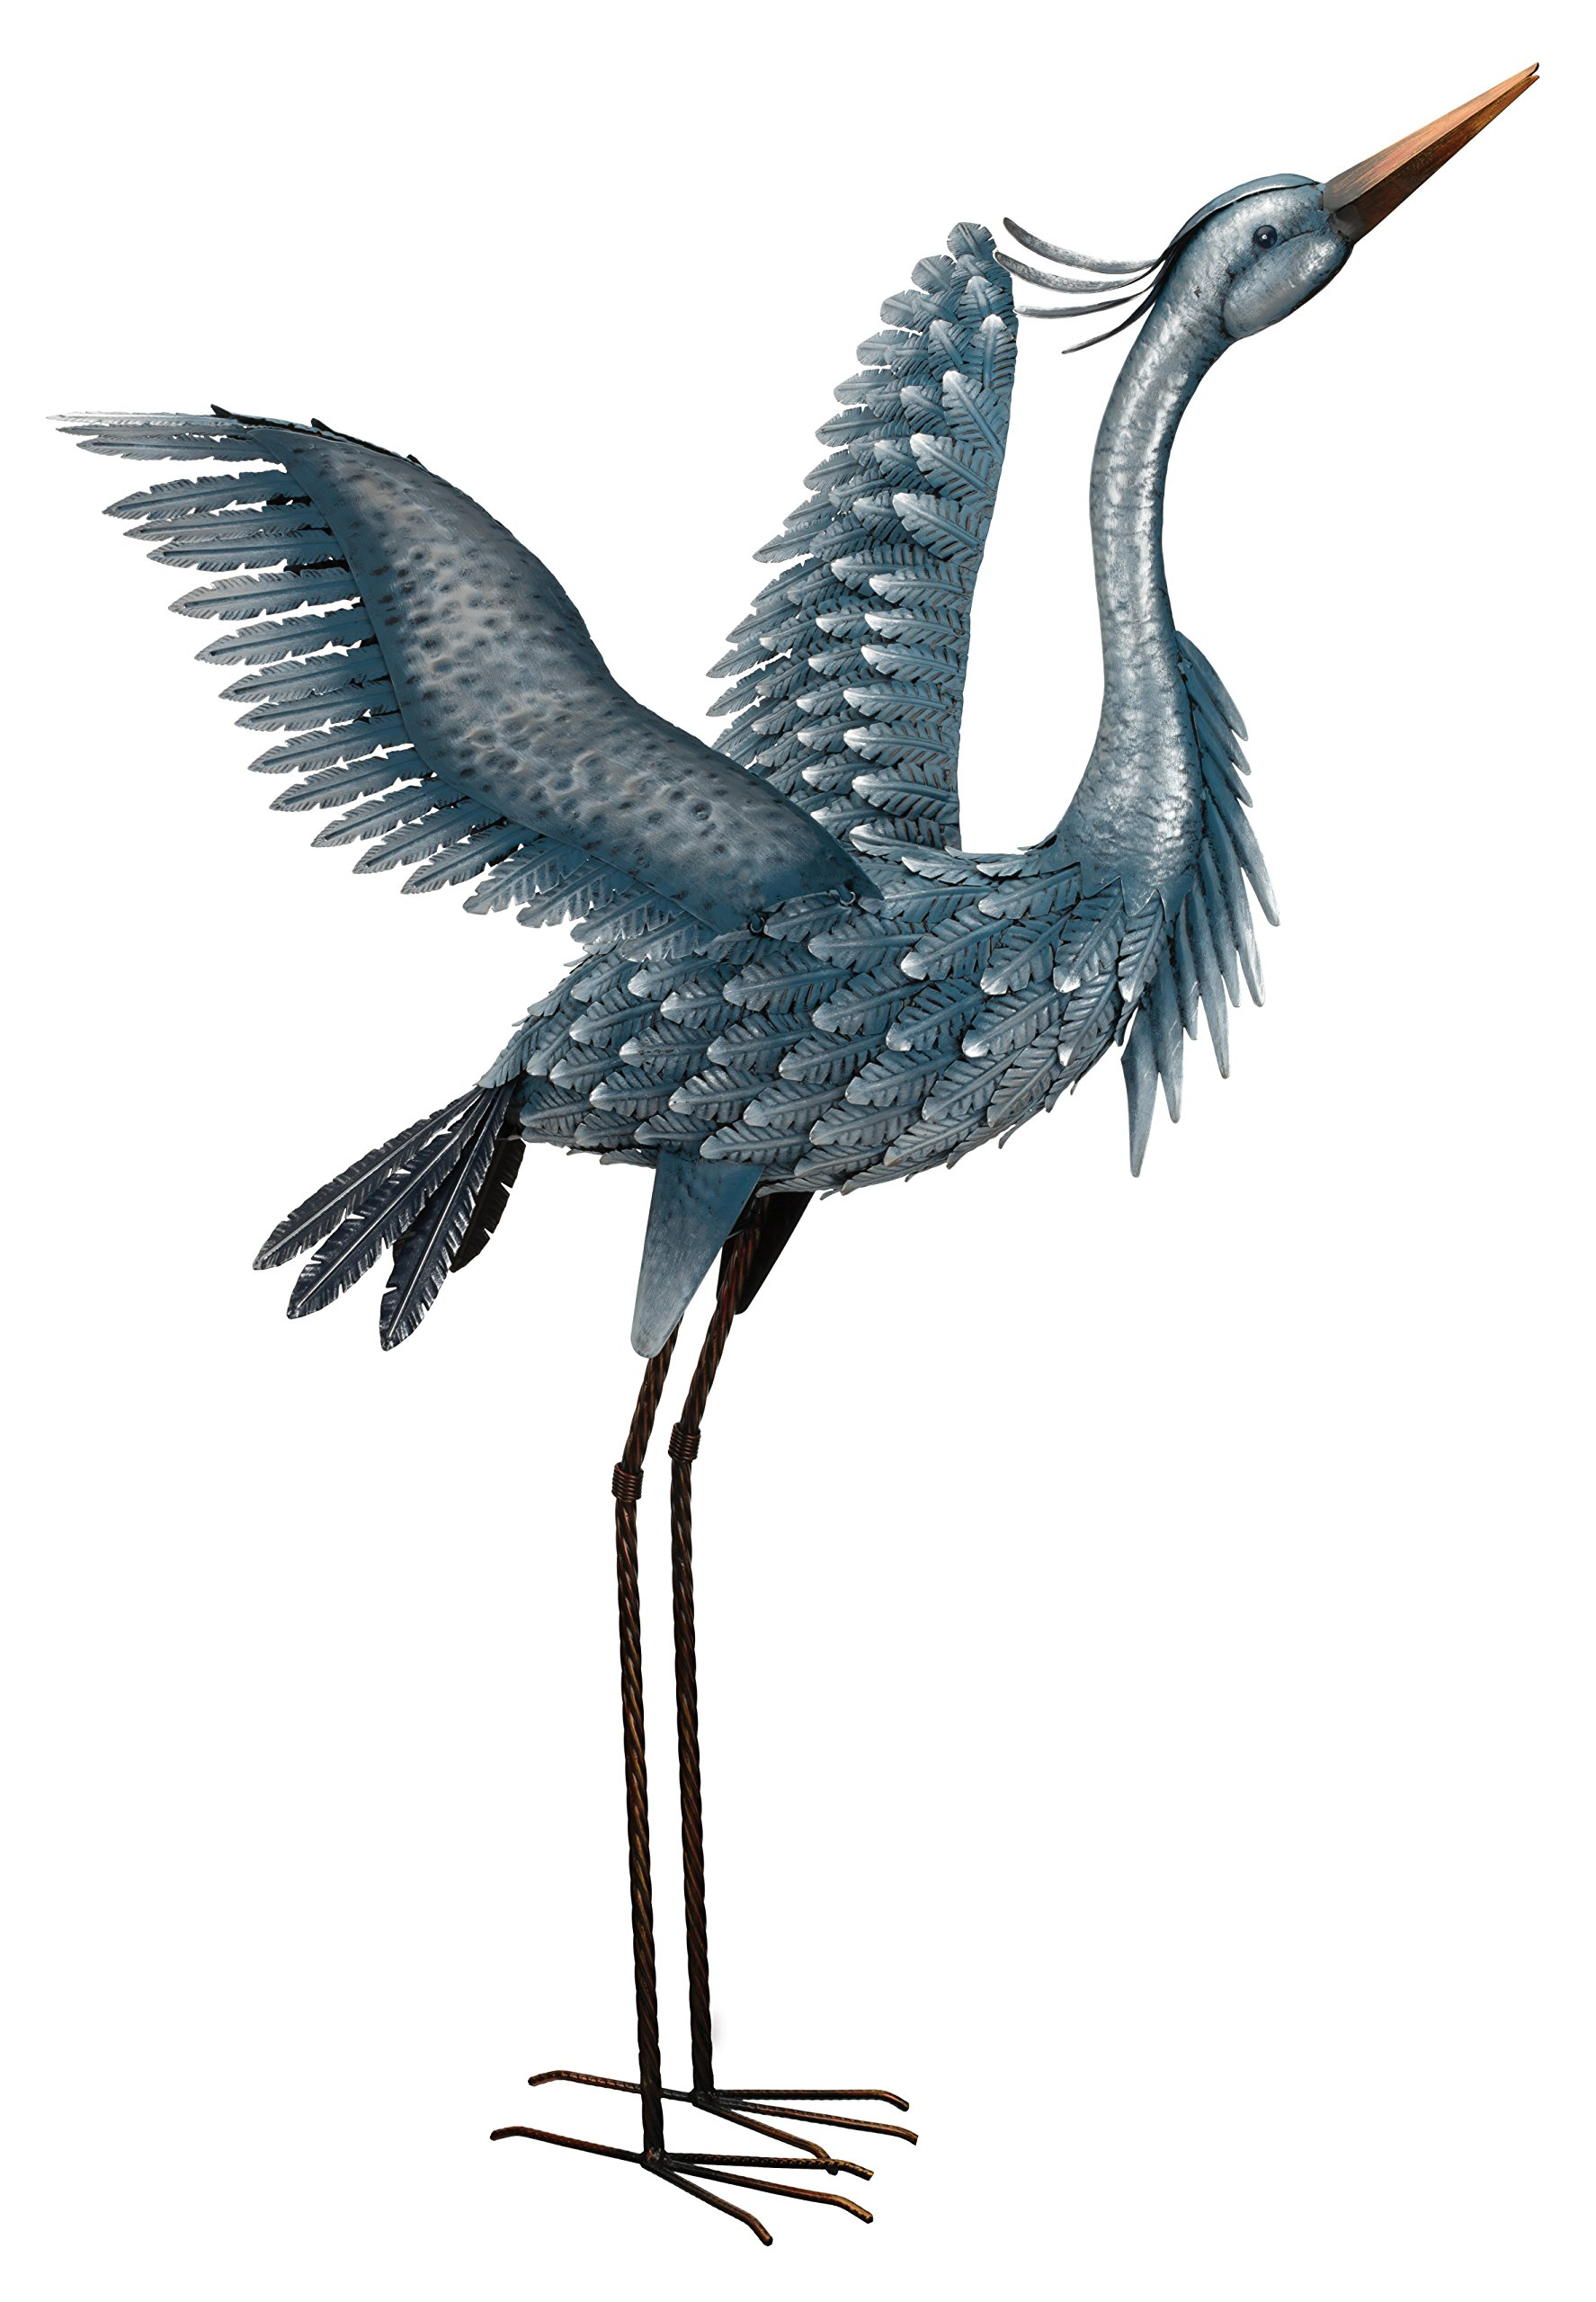 Regal Art & Gift 11778 Metallic Heron-Wings Up Bird Statuary, 47'', Blue